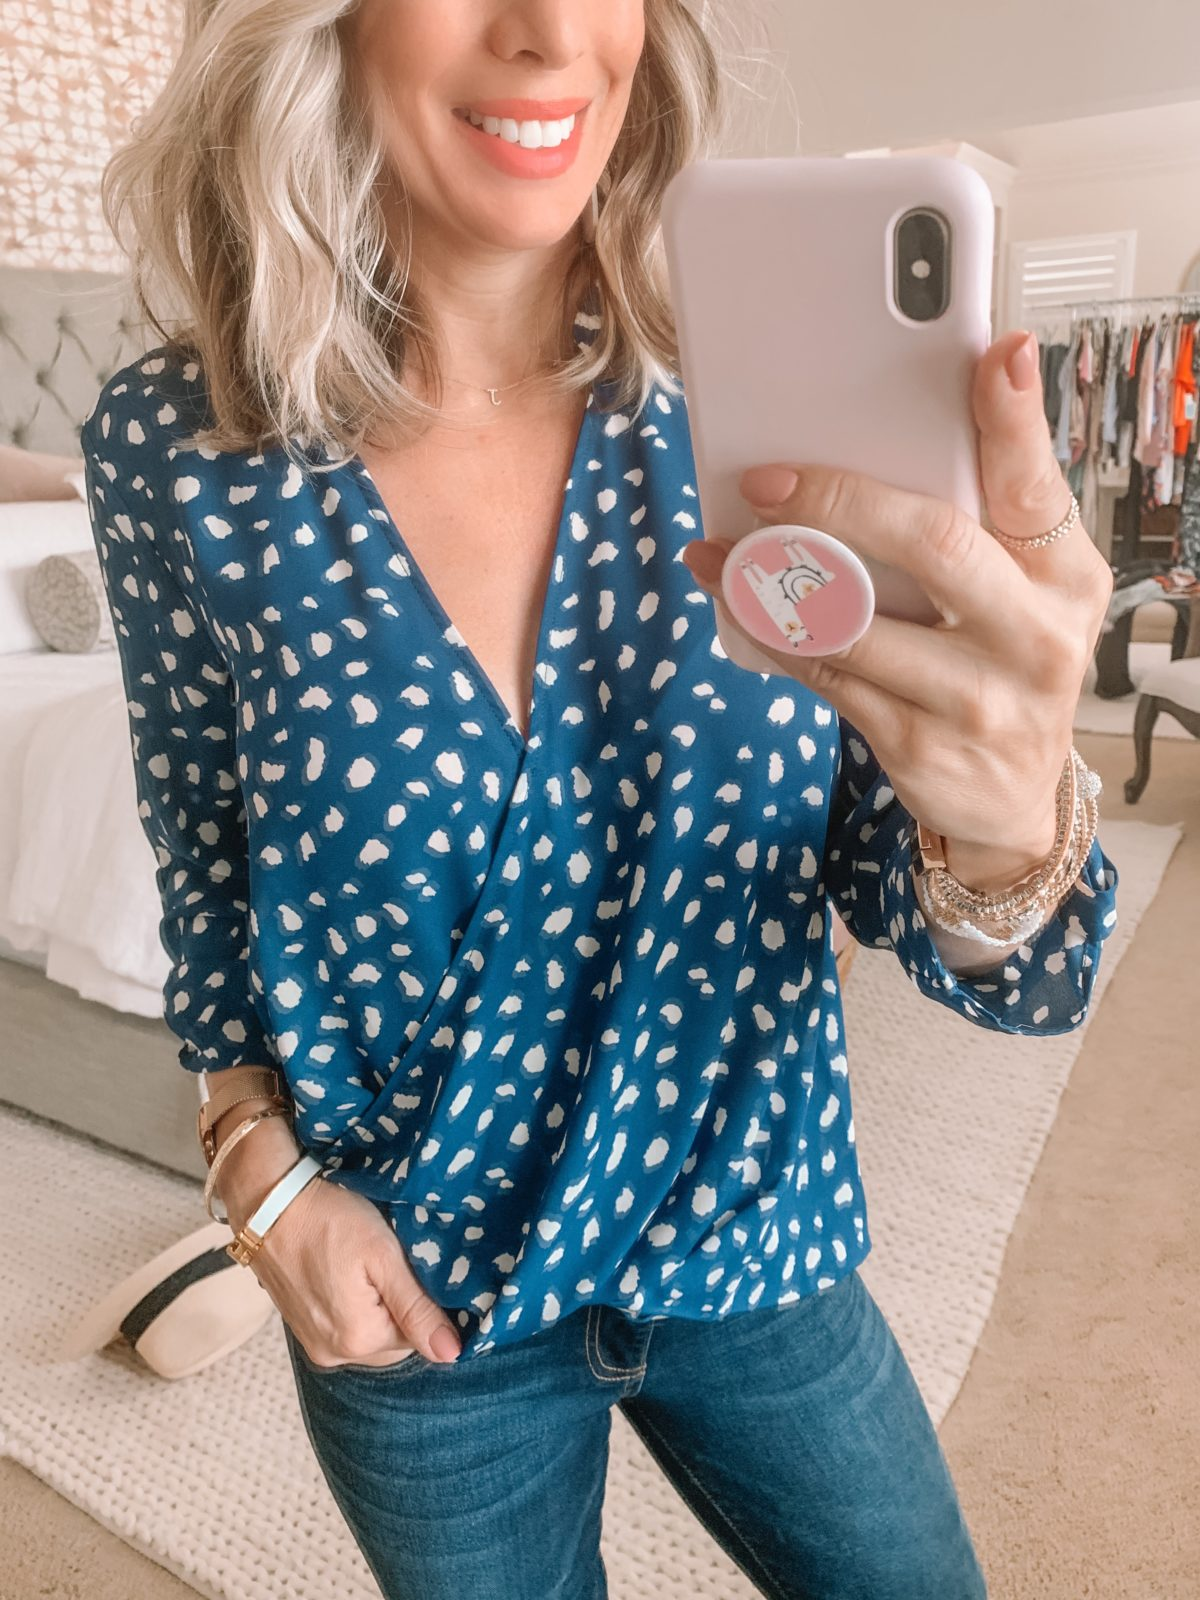 Dressing Room Finds Nordstrom and LOFT, Blue Dot Top, Flare Jeans